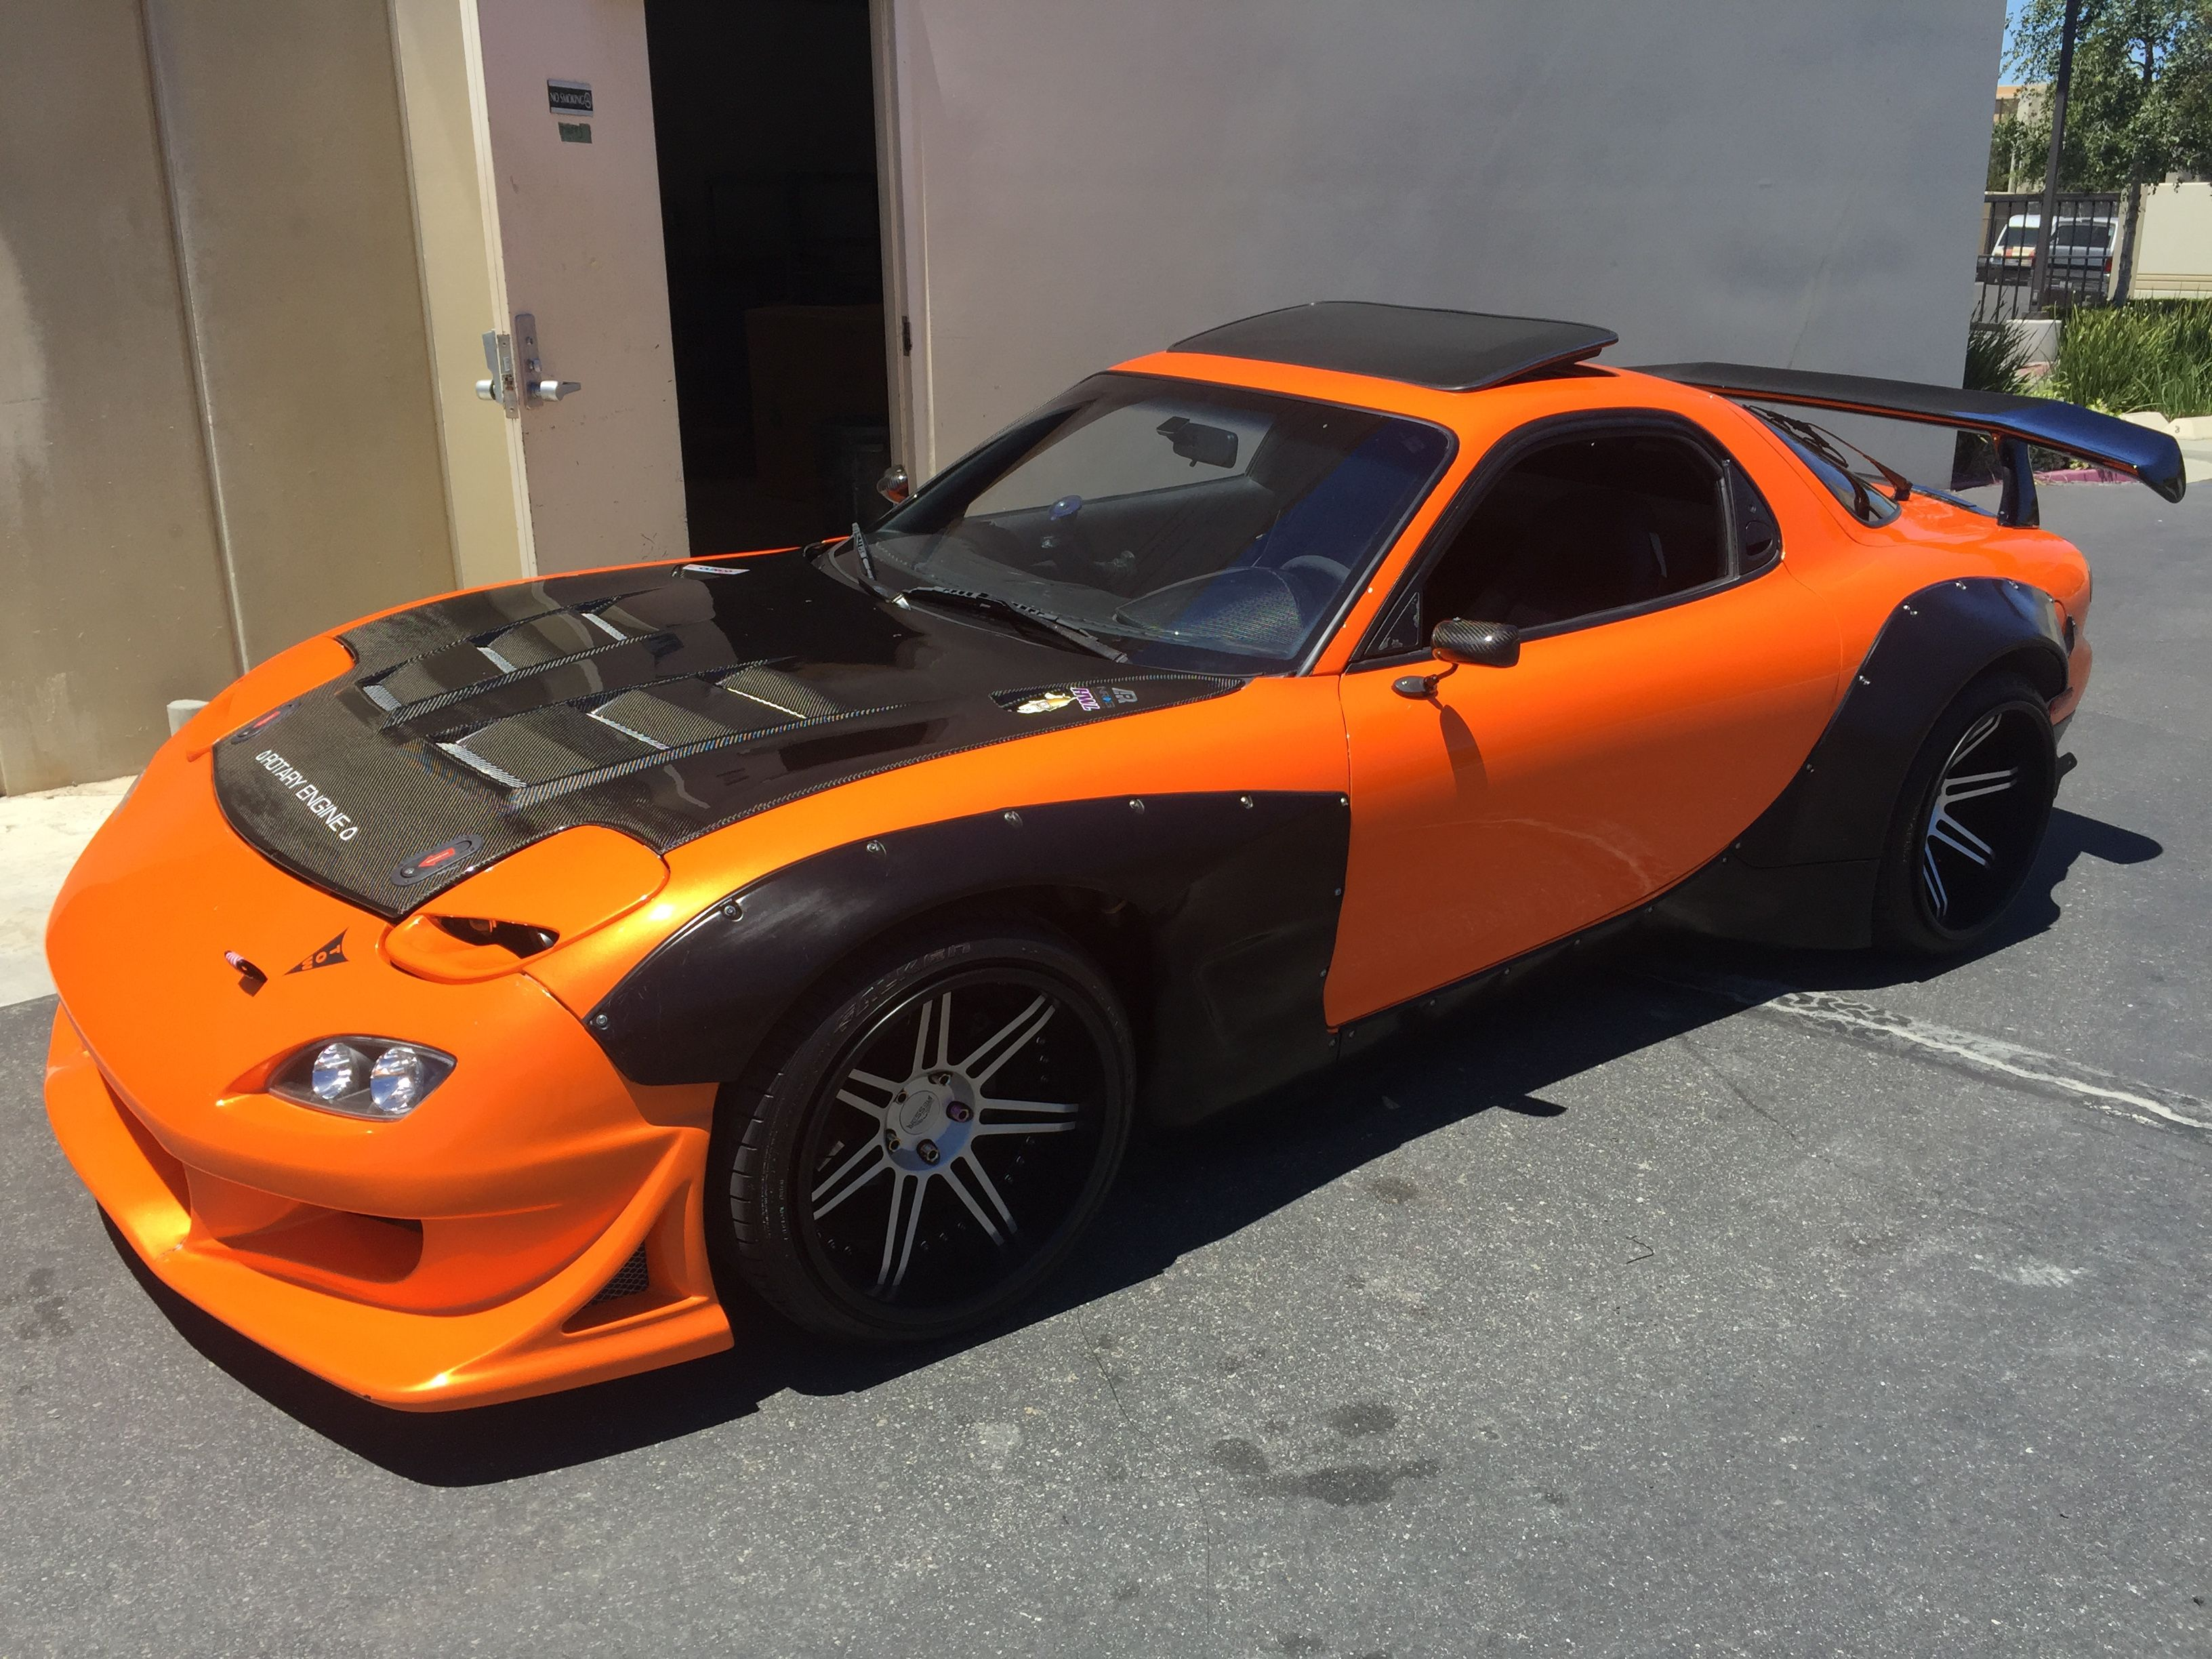 Christian's Orange Mazda RX7 FD3S | My Orange Mazda RX7 and other